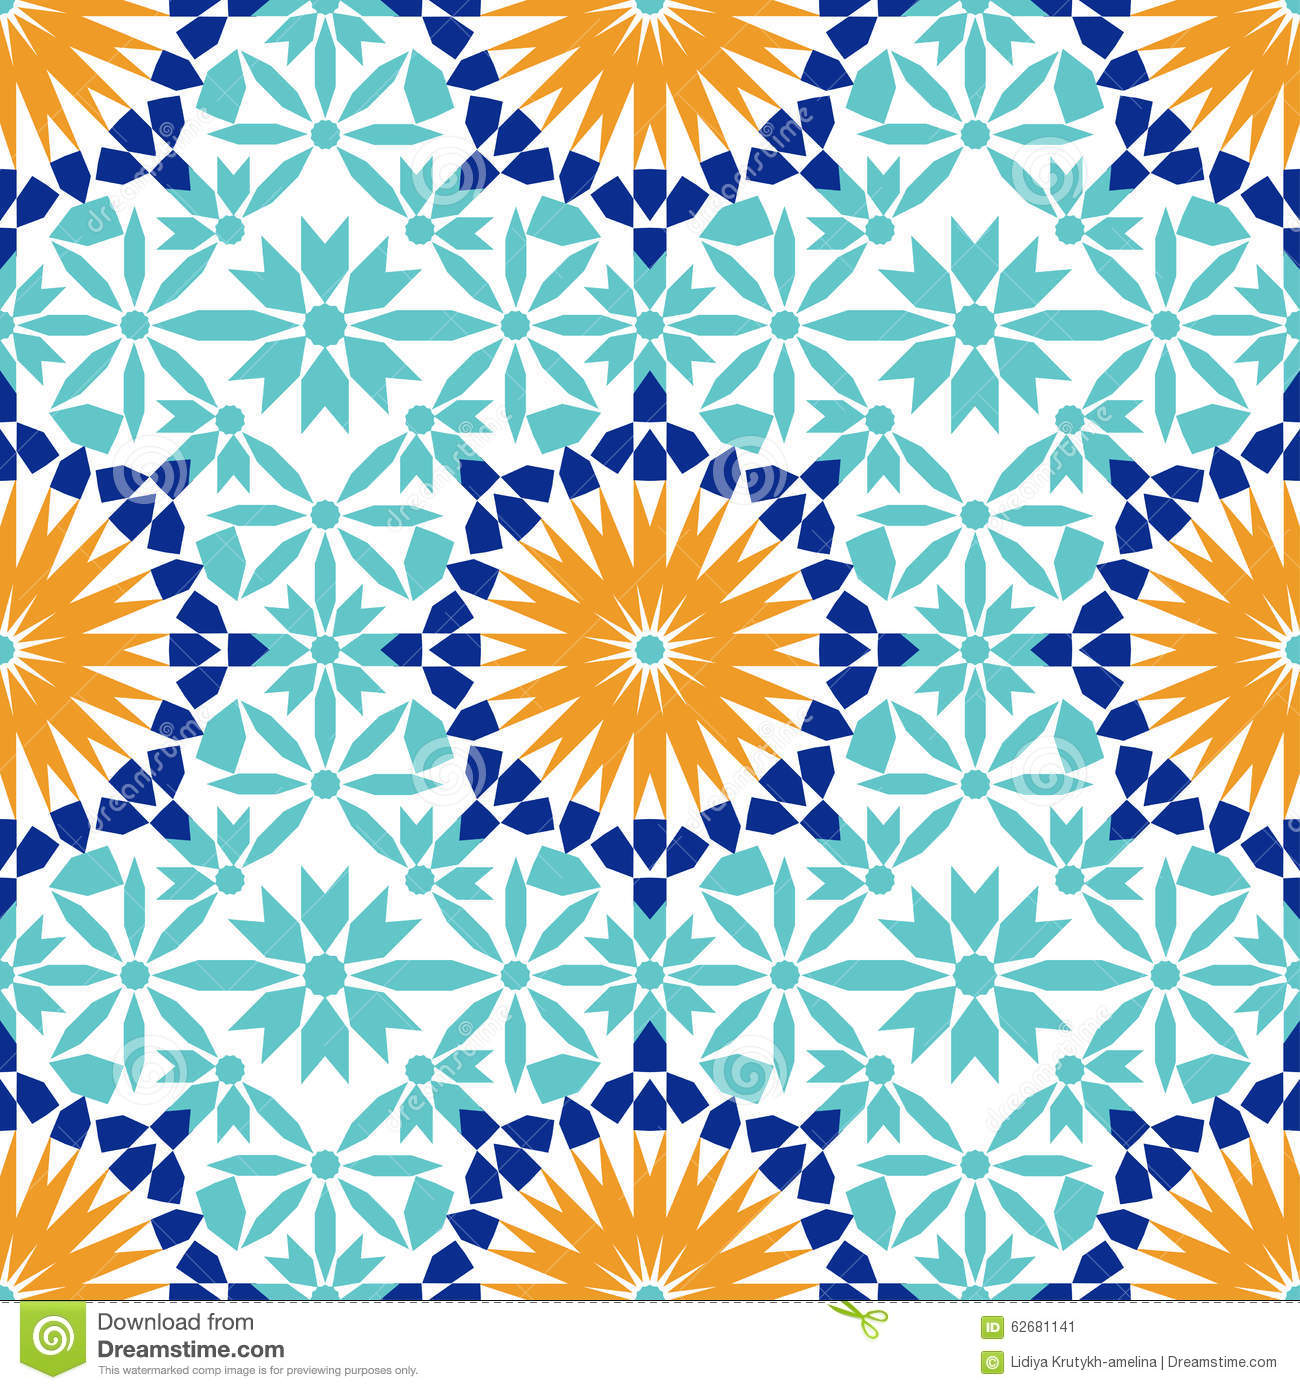 Can I Put Wallpaper On Top Of Wallpaper: Gorgeous Seamless Pattern From Blue Moroccan Tiles